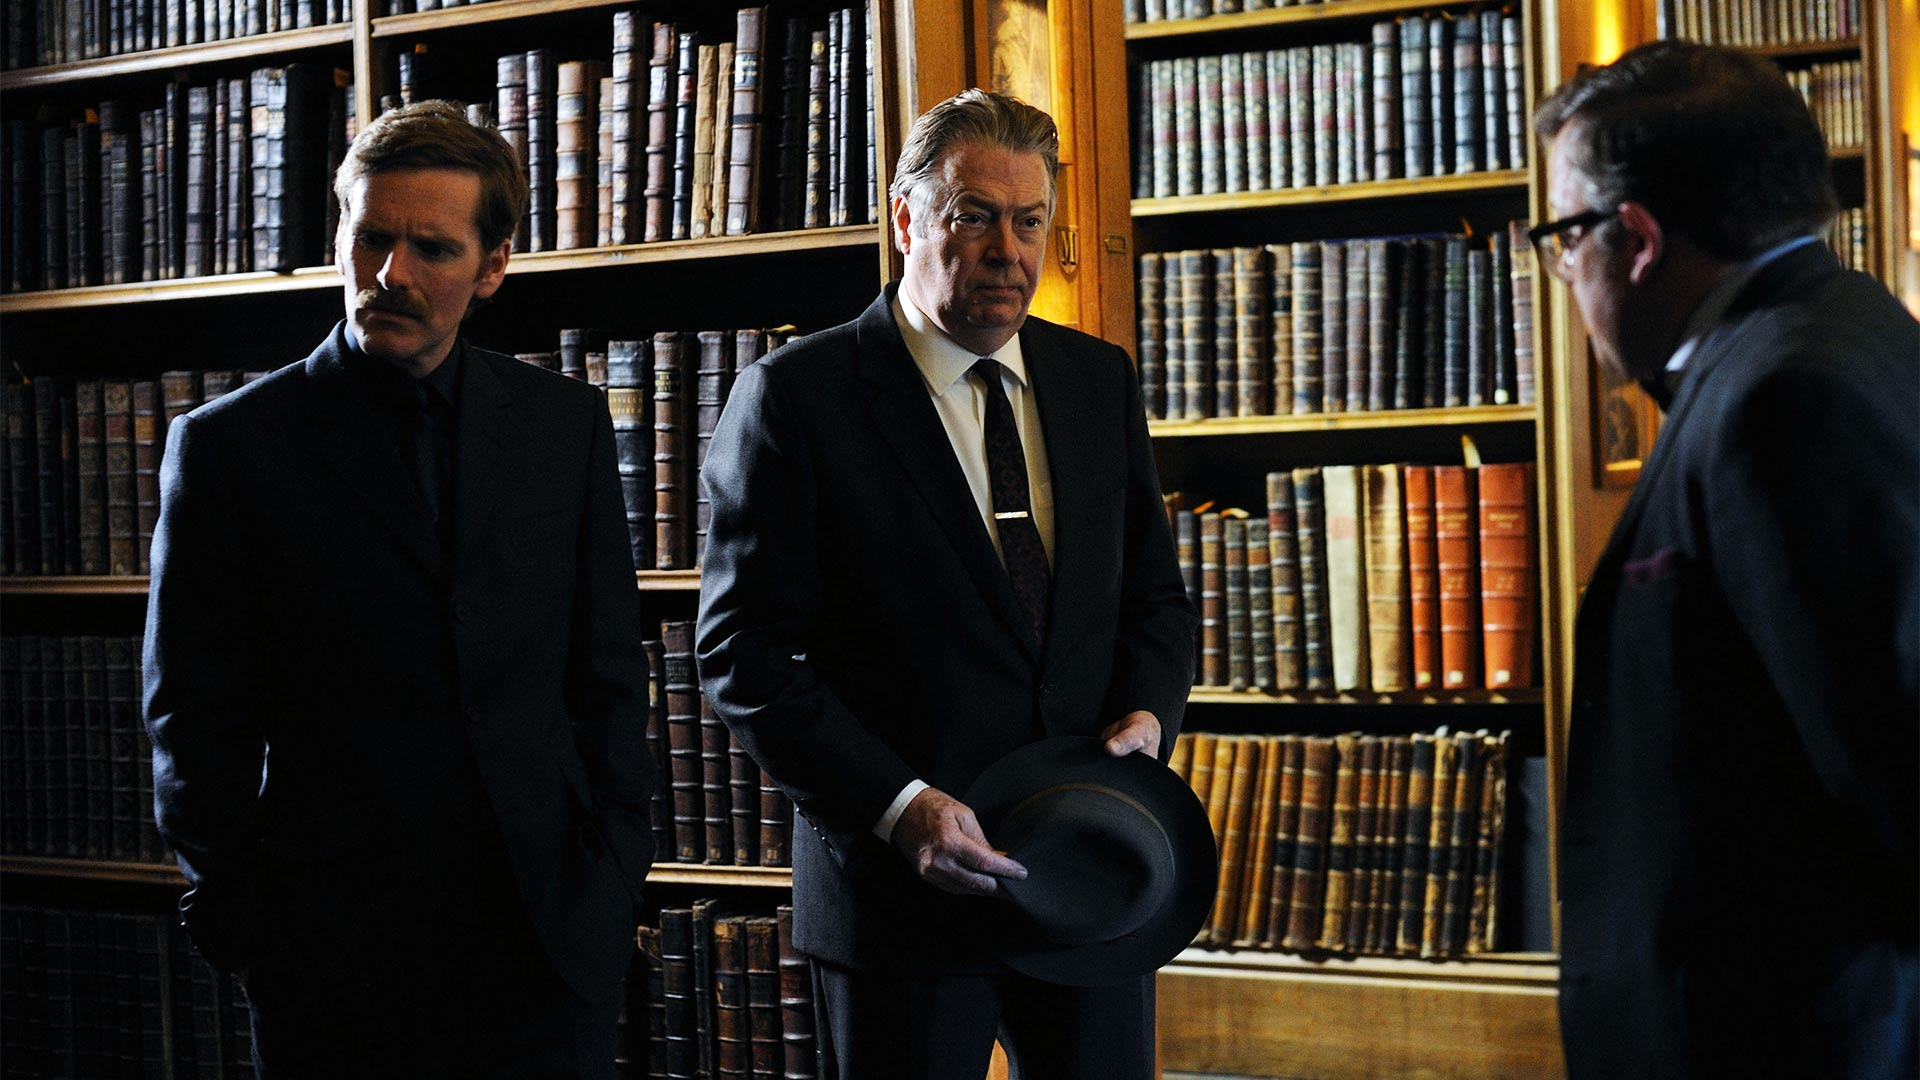 Pictured from left to right: SHAUN EVANS as Endeavour, ROGER ALLAM as DI Fred Thursday and JAMES BRADSHAW as DR Max DeBryn